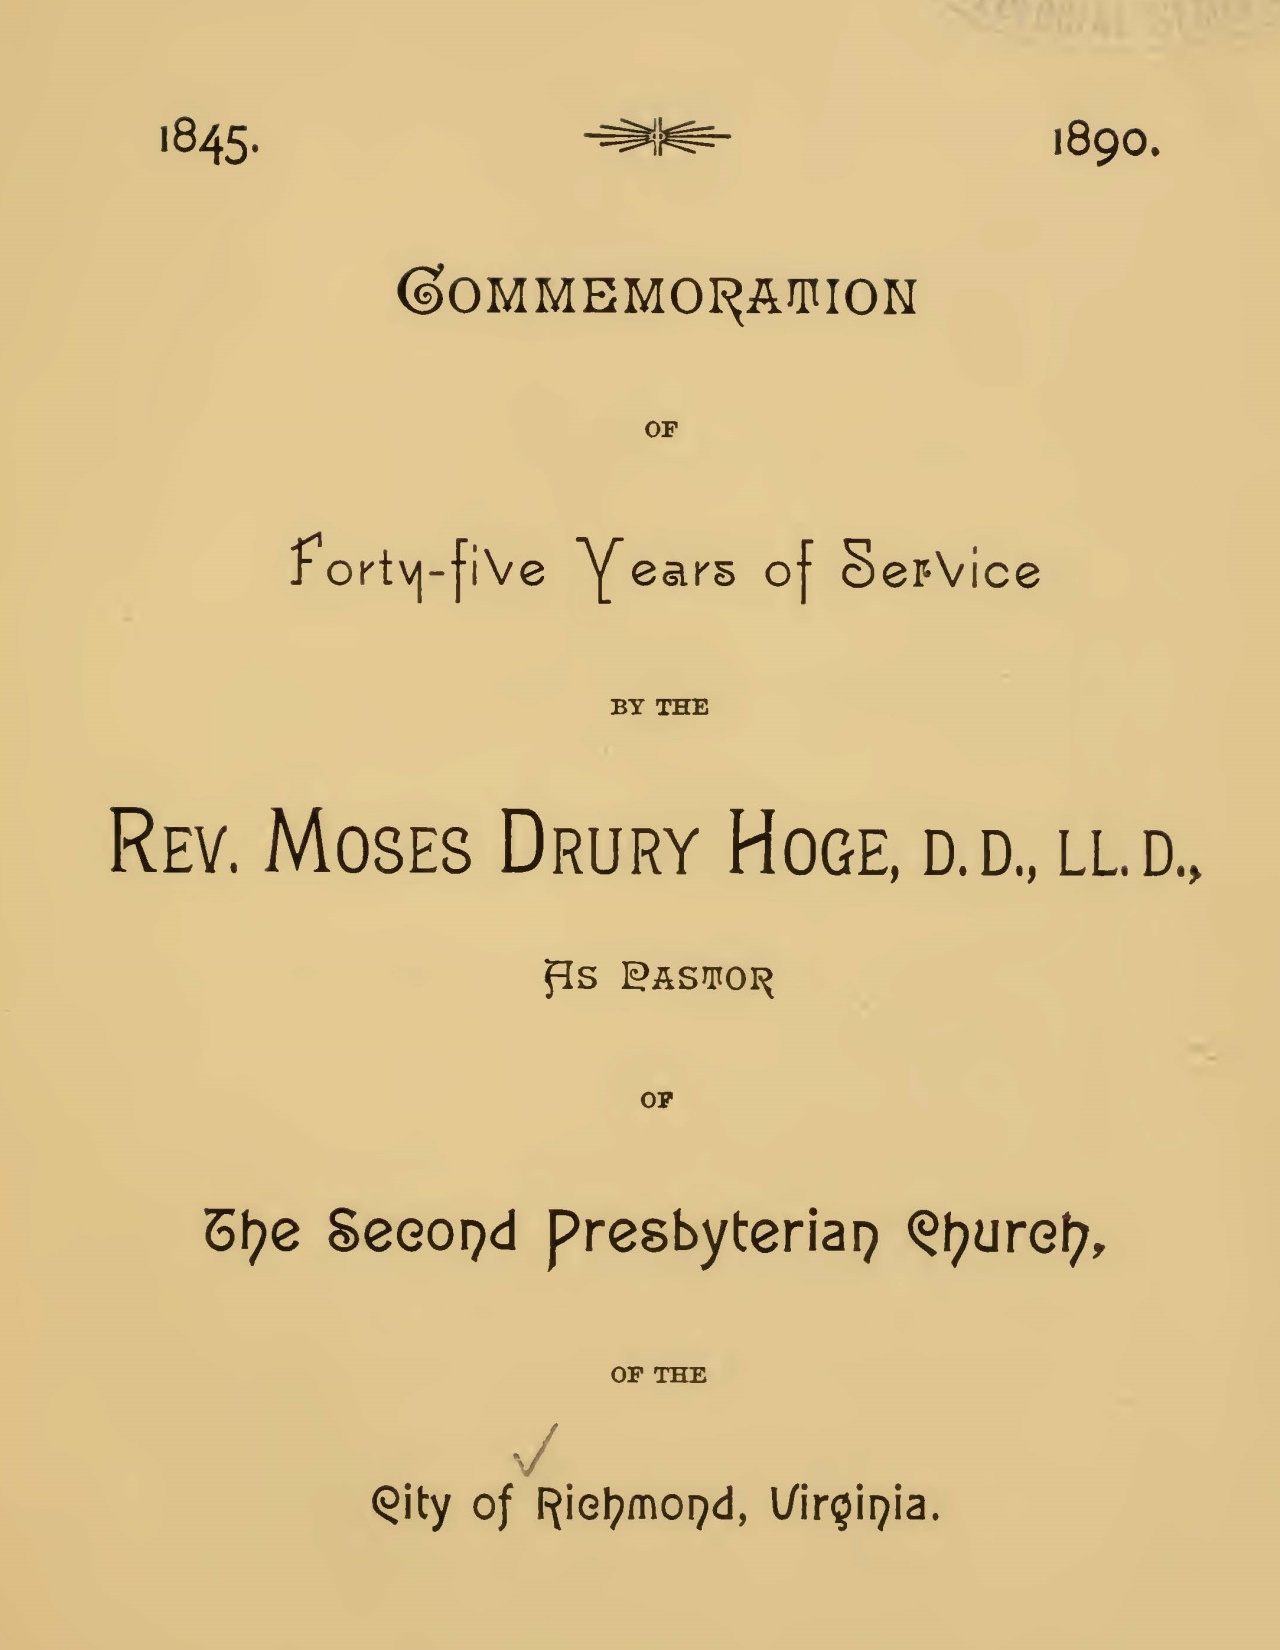 Hoge, Moses Drury, Commemoration of Forty-Five Years Title Page.jpg